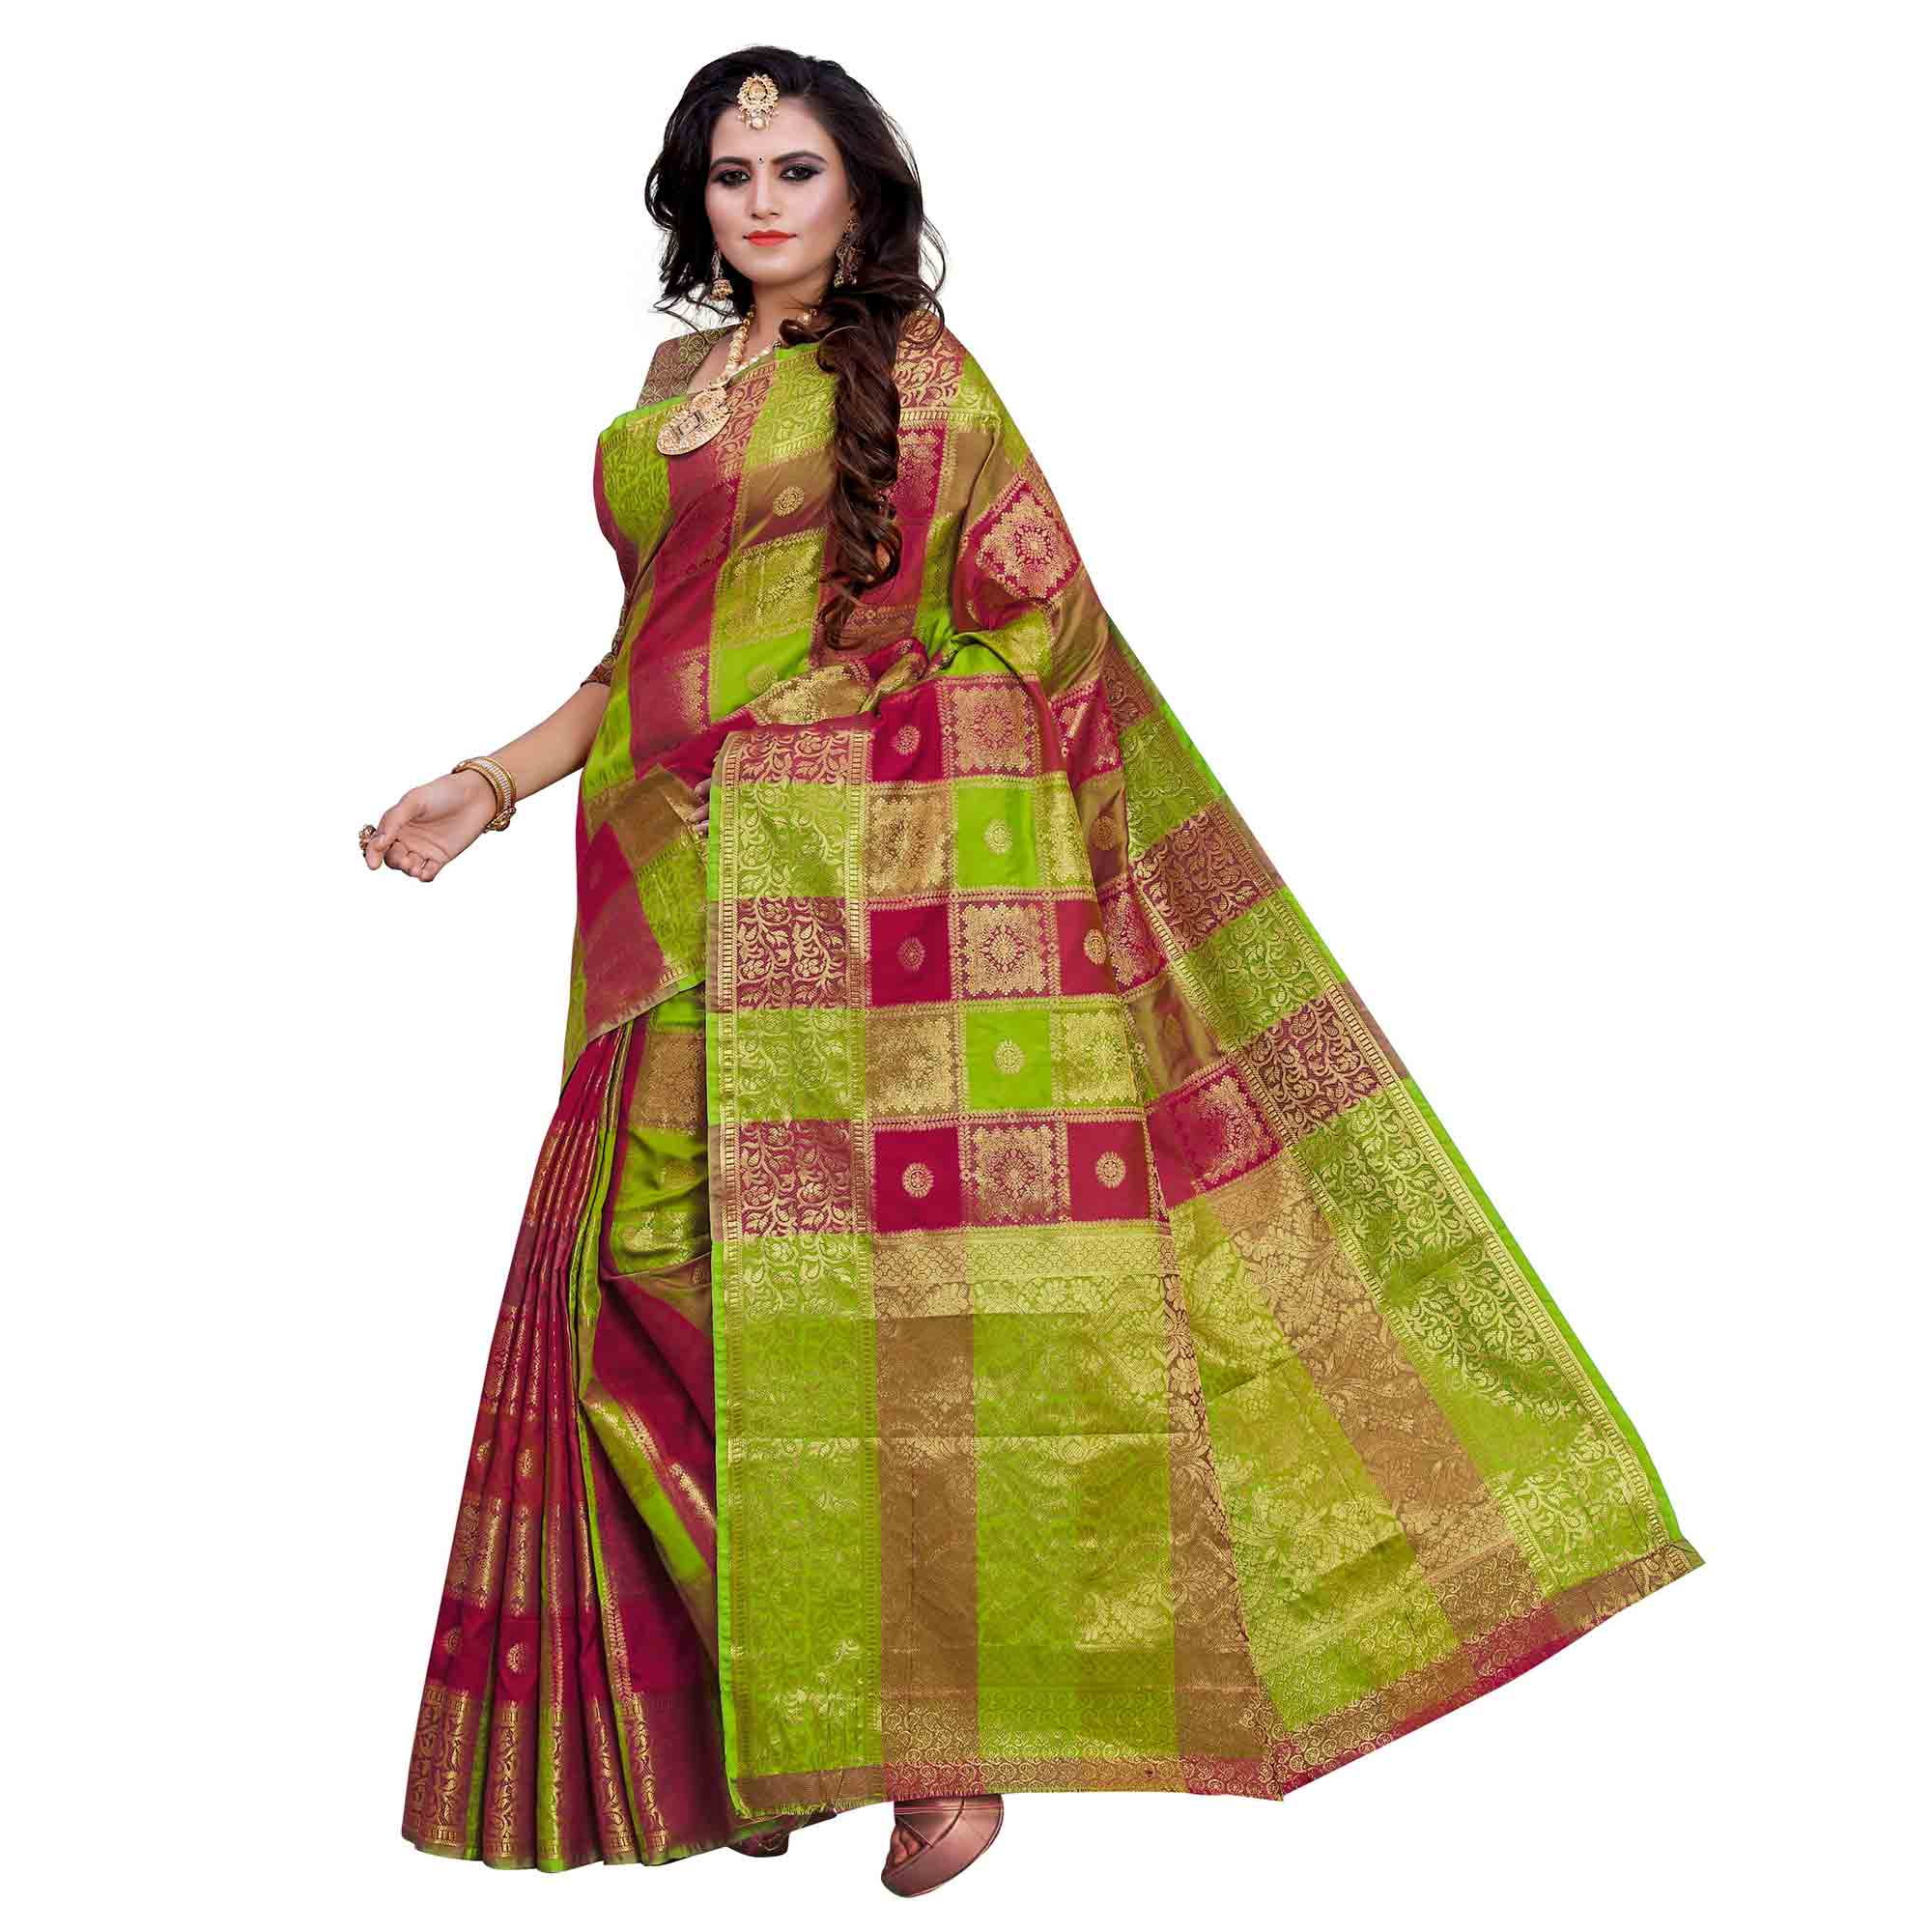 Radiant Green-Pink Colored Festive Wear Woven Work Art Silk Saree